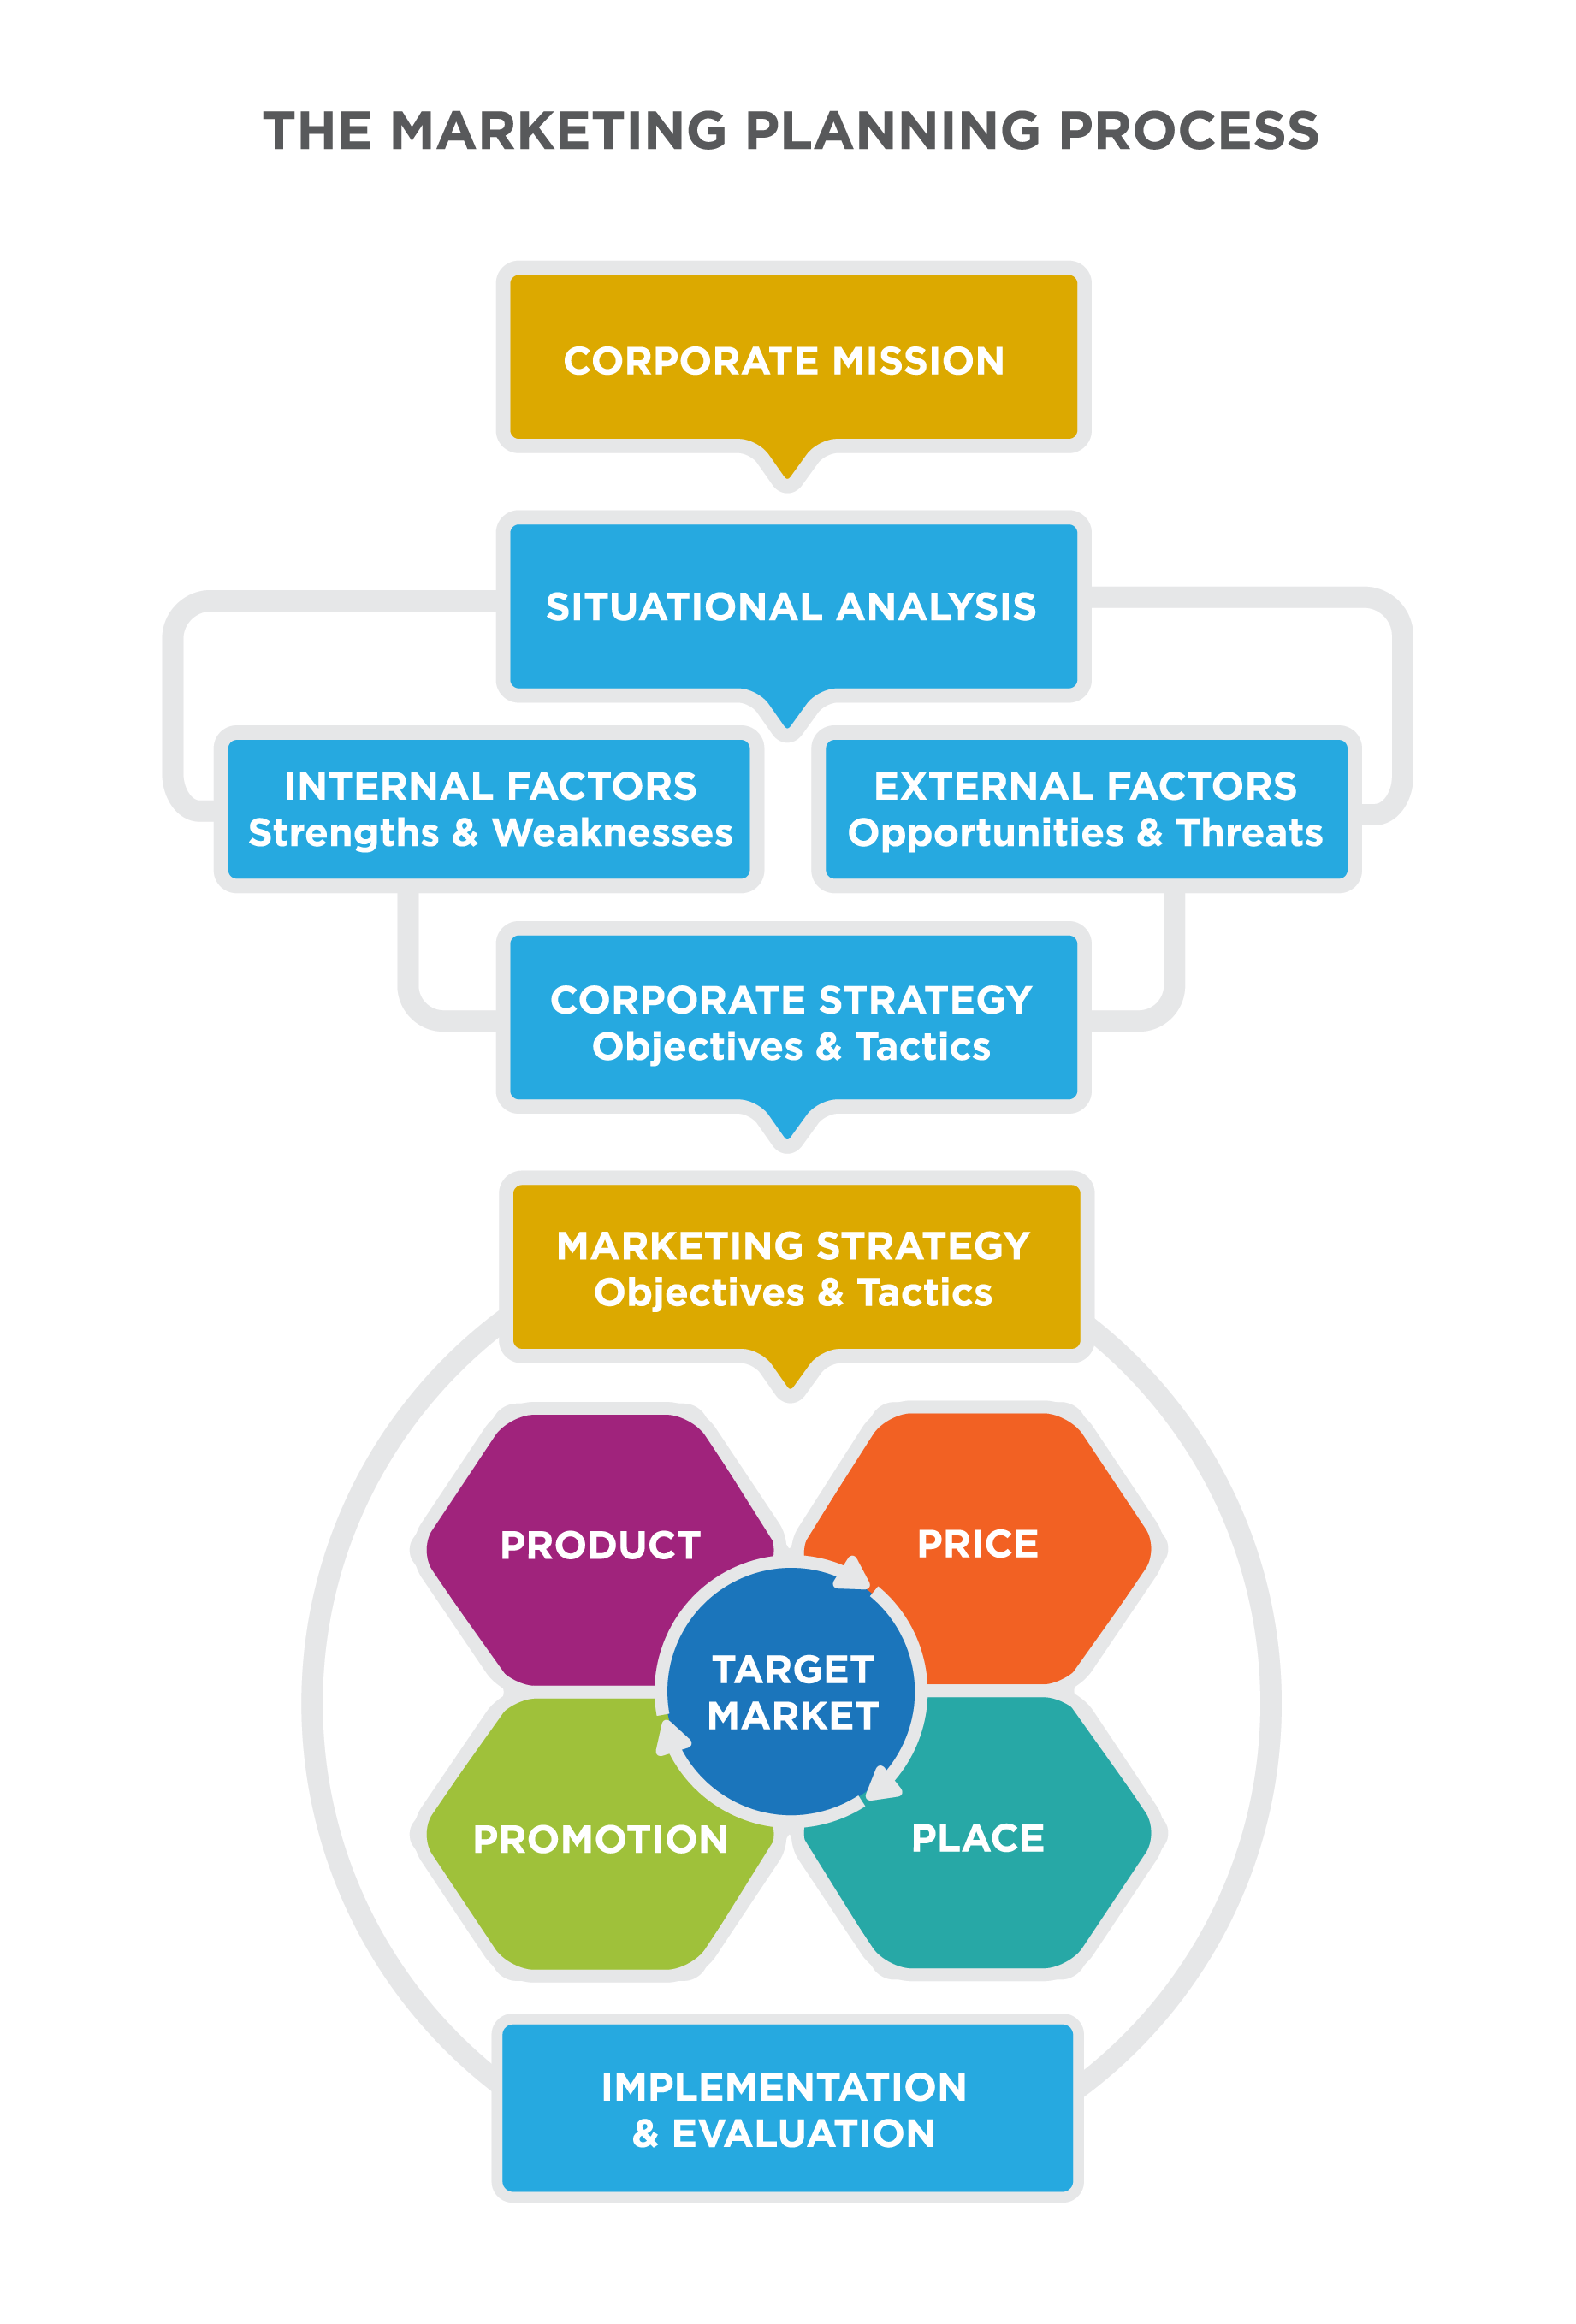 "The Market Planning Process: vertical Flowchart with 7 layers. From top, Layer 1 ""Corporate Mission"" points to Layer 2 ""Situational Analysis,"" points Layer 3 ""Internal Factors: Strengths & Weaknesses"" and ""External Factors: Opportunities & Threats,"" points to Layer 4 ""Corporate Strategy: Objectives & Tactics."" Layers 2-4 are connected with gray lines, as one sub-unit. This points to Layer 5 ""Marketing Strategy: Objectives & Tactics,"" to Layer 6, a graphic showing ""Target Market"" as the central piece of the 4 Ps surrounding it: Product, Price, Promotion, Place. The final layer is ""Implementation & Evaluation."" Layers 5-7 are connected with gray lines, as a second sub-unit."